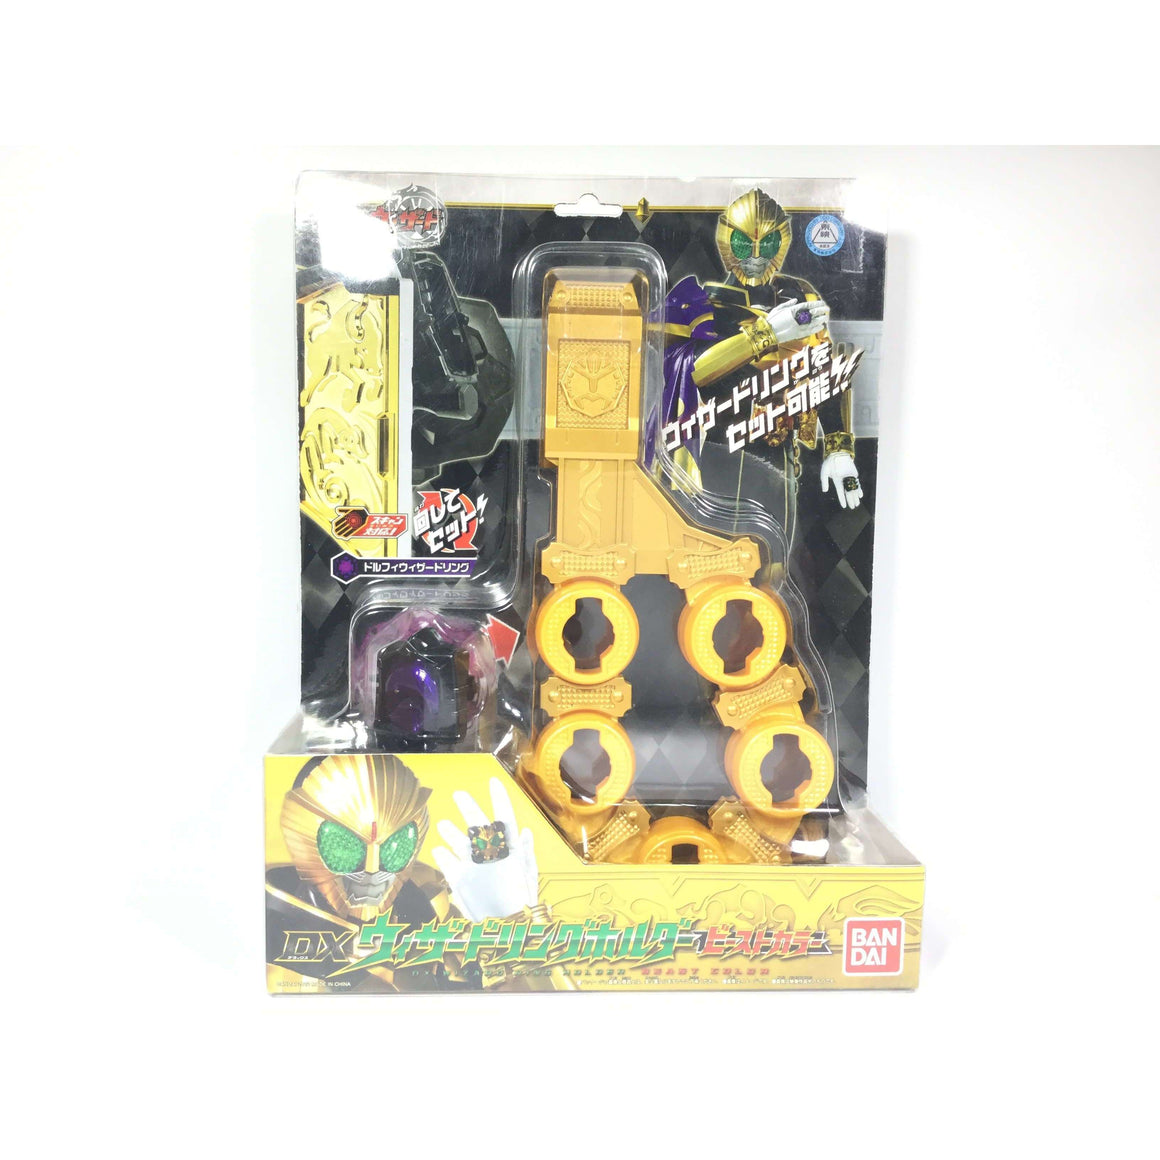 CSTOYS INTERNATIONAL:[BOXED] Kamen Rider Wizard: DX Wizard Ring Holder Beast Ver.